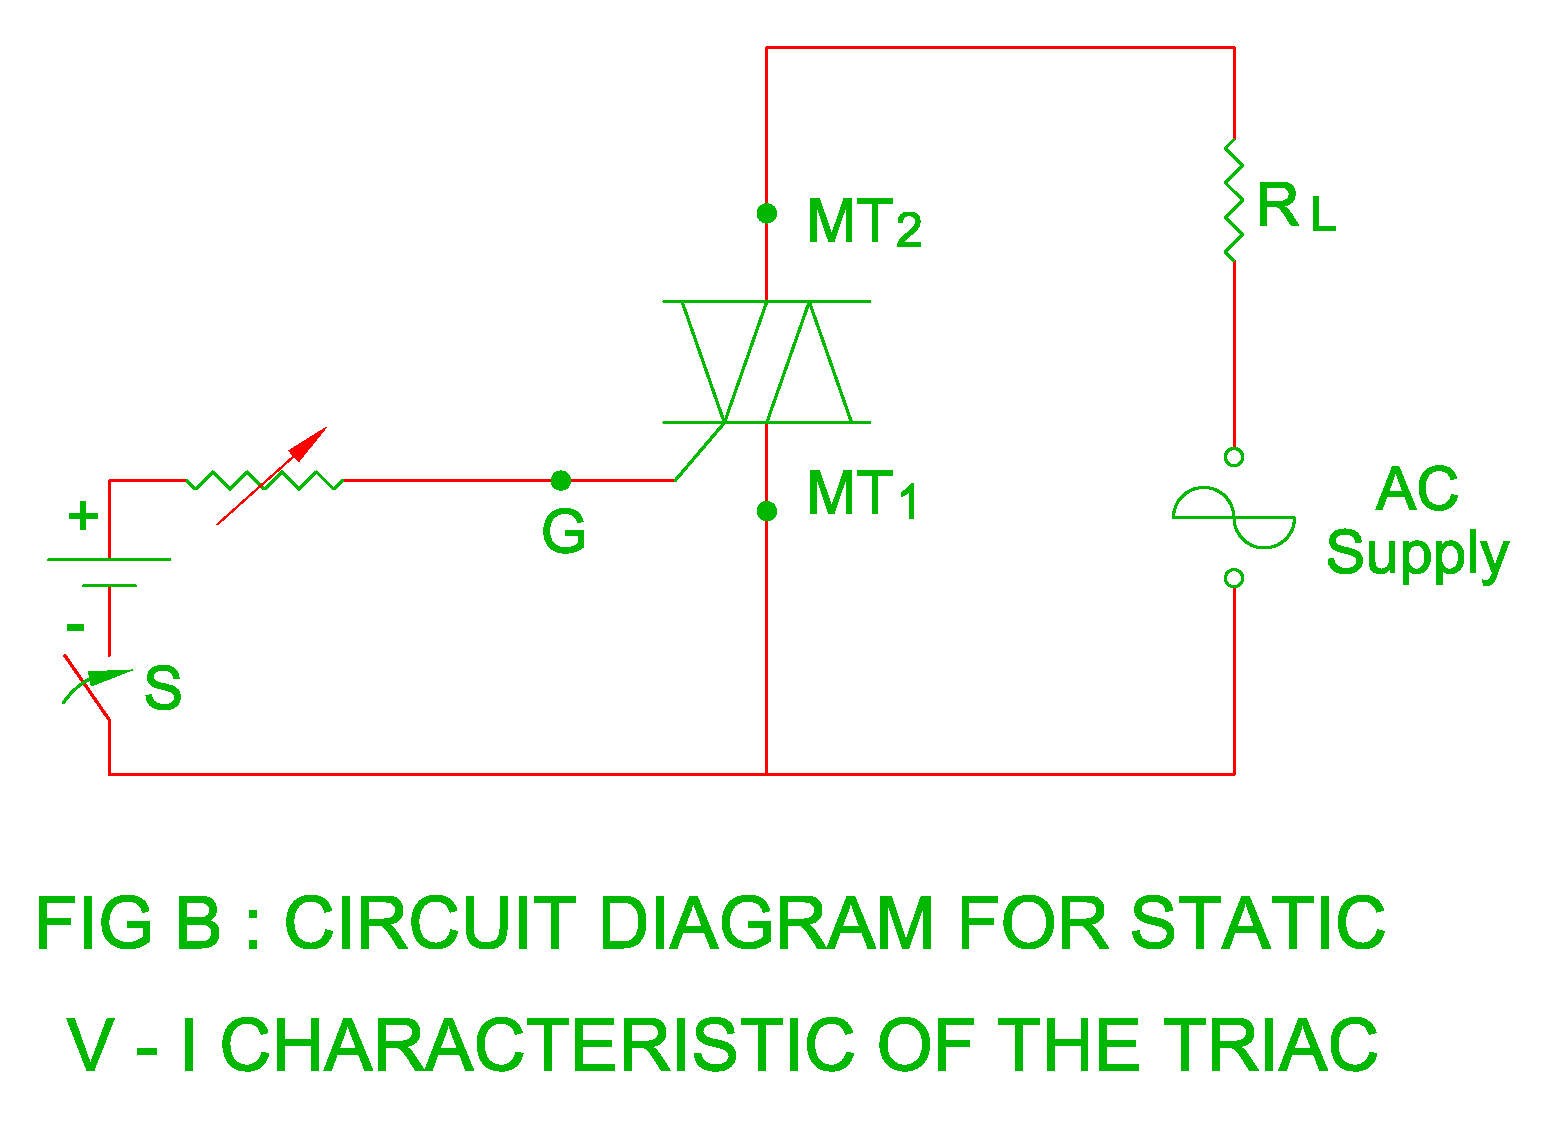 ( 2 ) When MT2 is made positive with respect to MT1, the triac turns on and  current flows through MT2 to MT1 terminal. circuit diagram ...